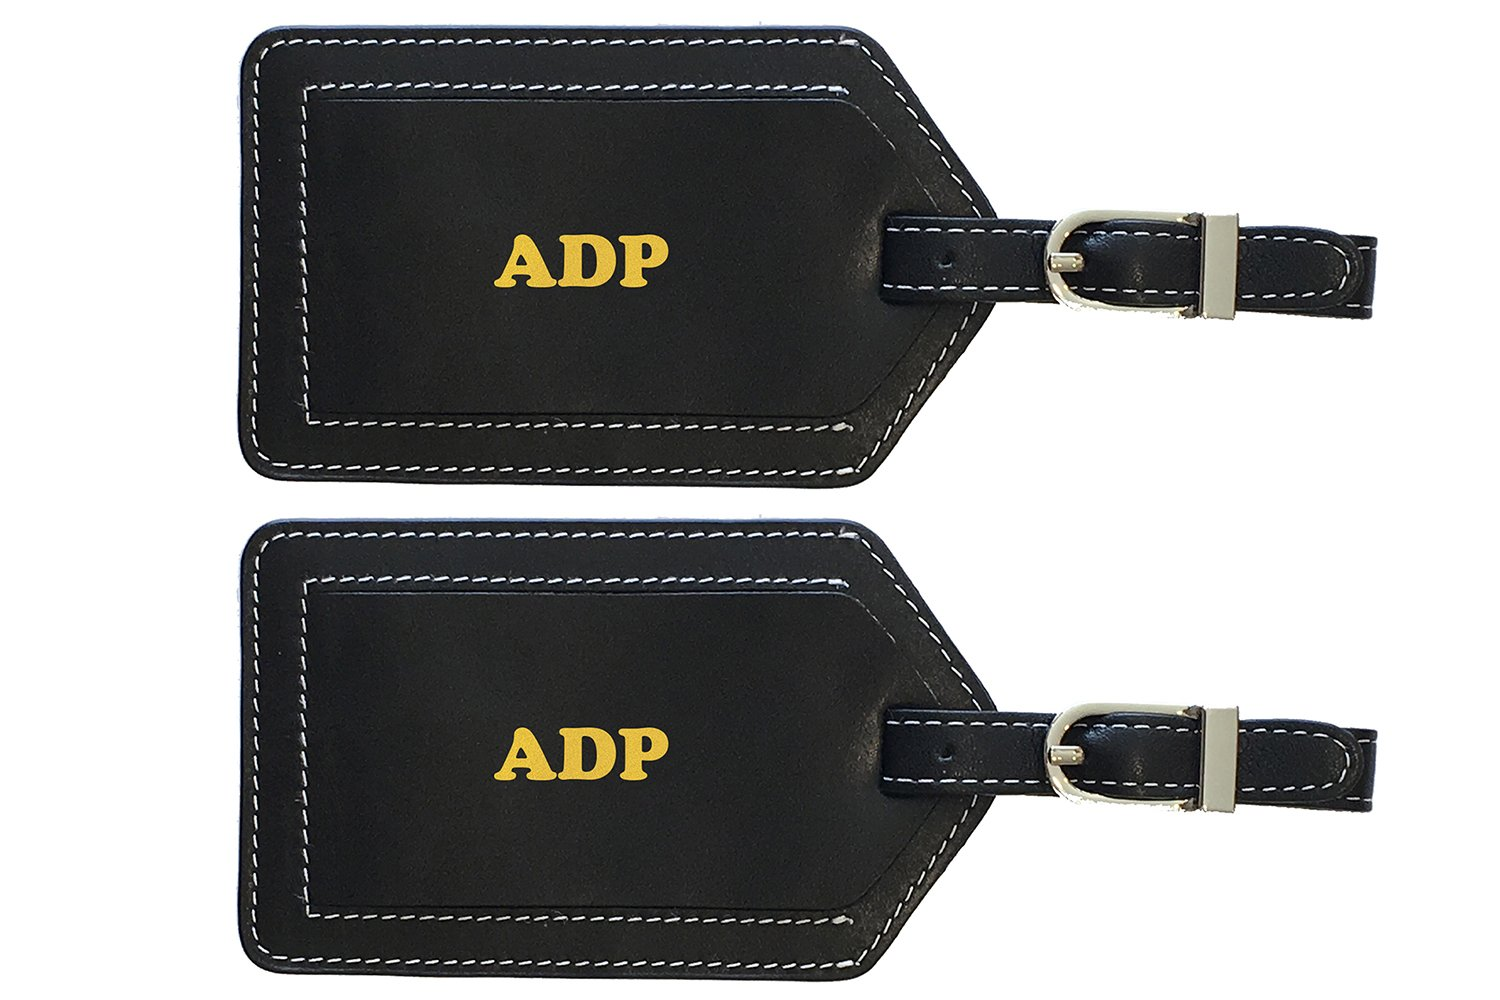 Personalized Monogrammed Black Leather Luggage Tags - 2 Pack